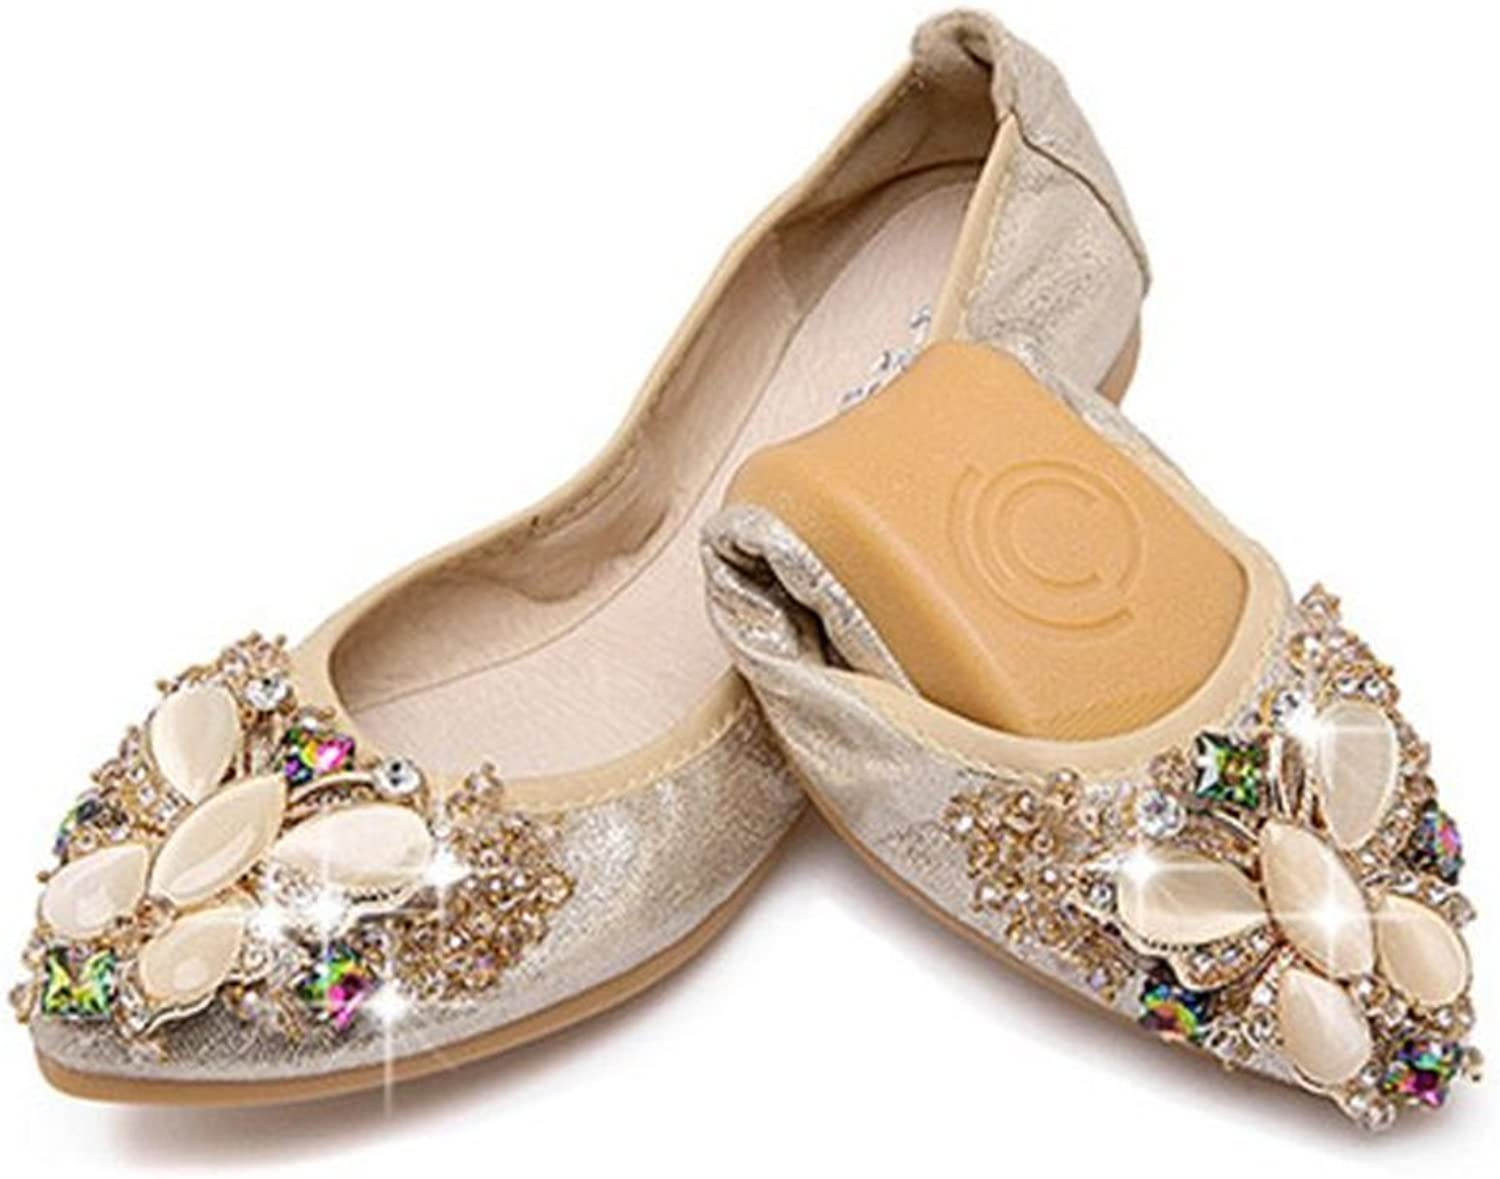 Cloudless Womens Foldable Soft Ballet Flats Rhinestone Comfort Slip On Loafers